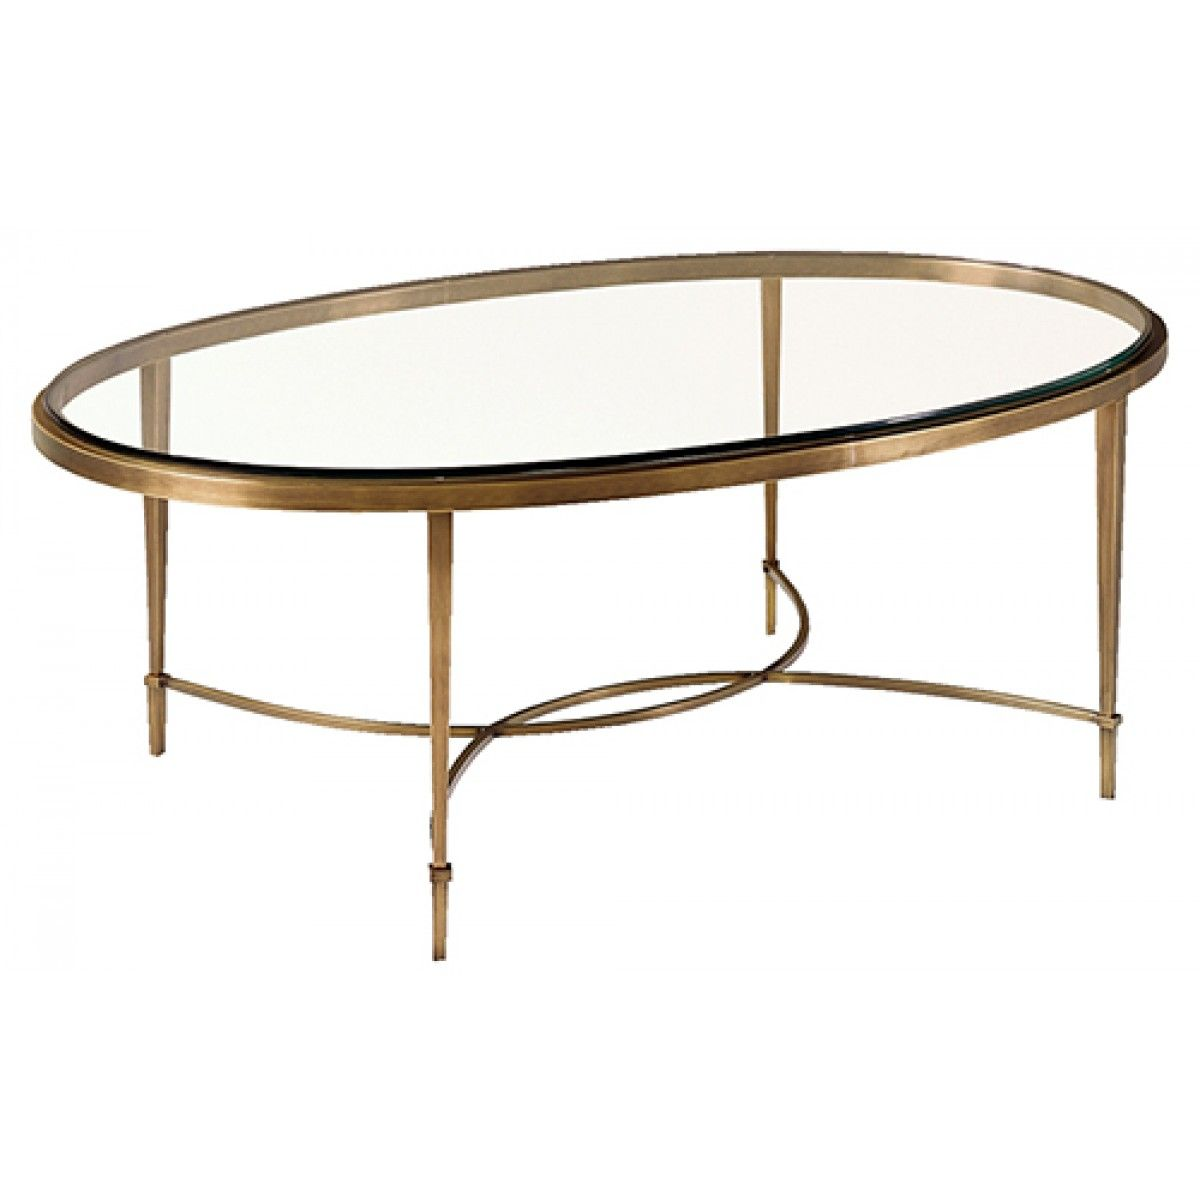 oval side table. 404 Not Found 1. Coffee CocktailsCabanaSide TablesLiving Oval Side Table